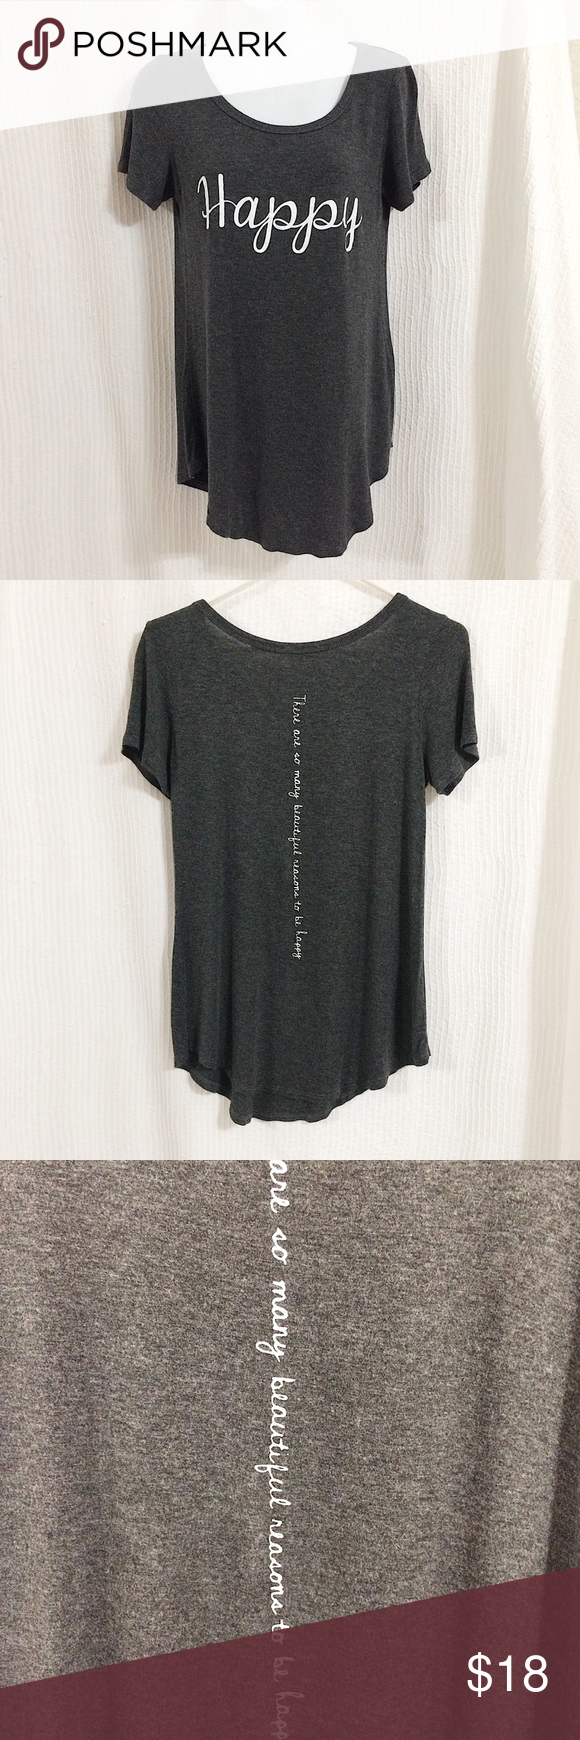 French Pastry Happy Soft T Shirt In Grey In 2020 Clothes Design Fashion Fashion Design